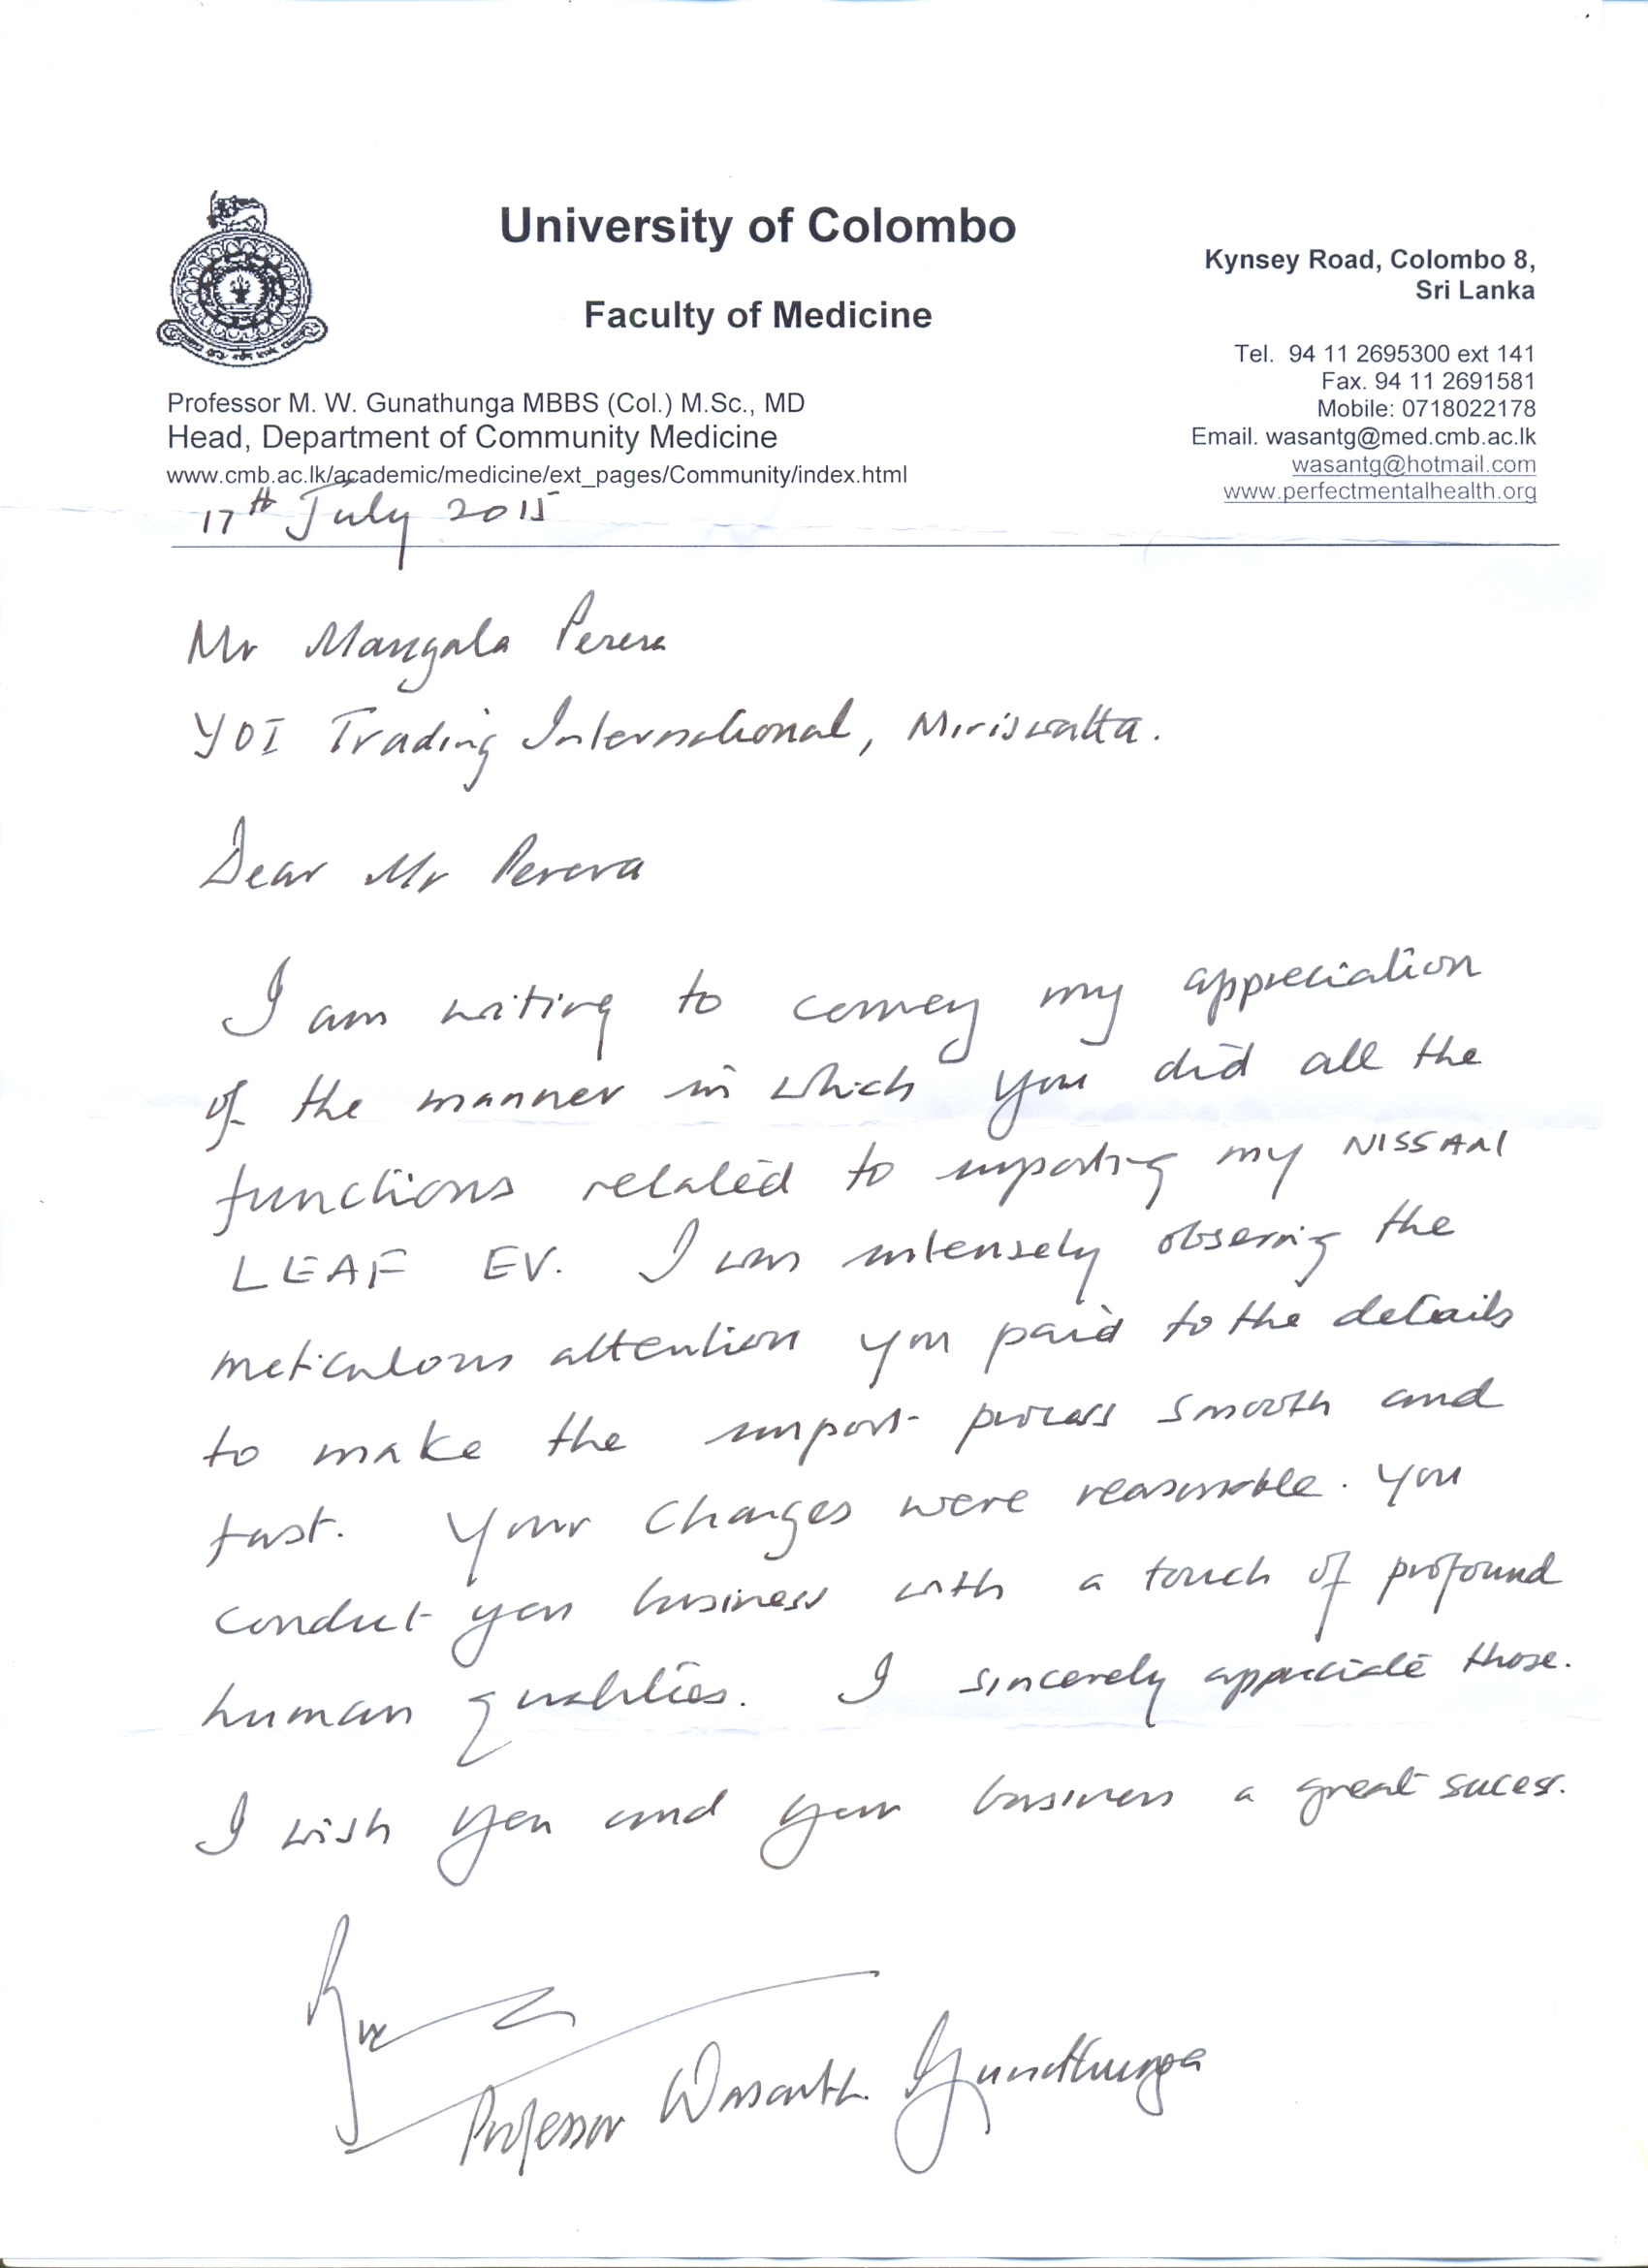 Doctor wasantha's letter